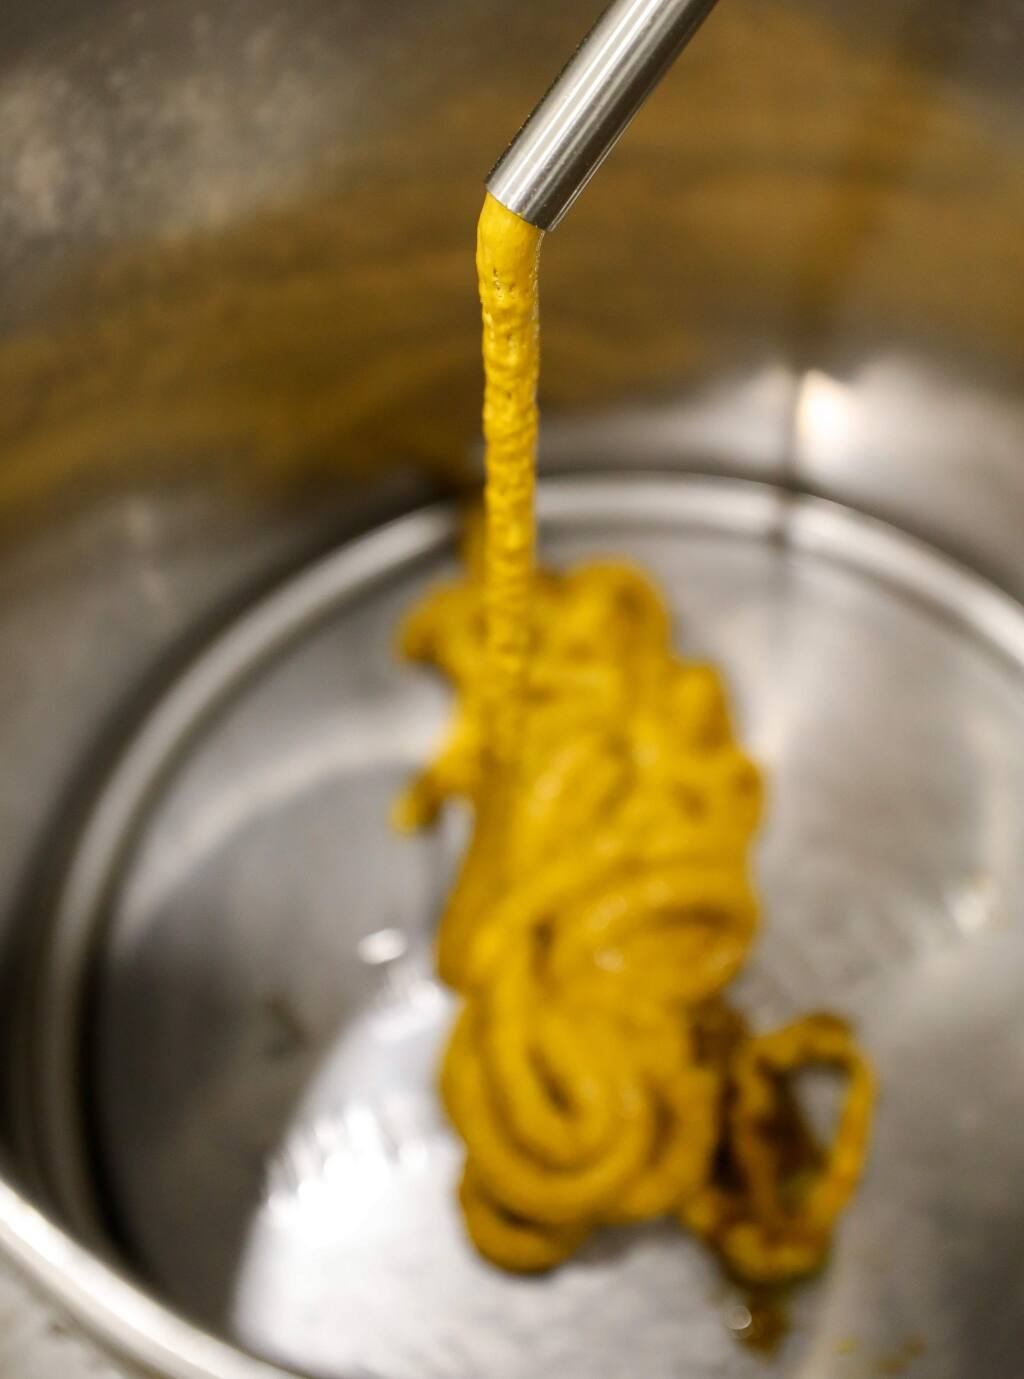 Cannabis extract slowly exits an extraction machine, before it is subjected to additional layers of refinement, at the SPARC production facility, in Santa Rosa on Friday, February 14, 2020. (Christopher Chung/ The Press Democrat)